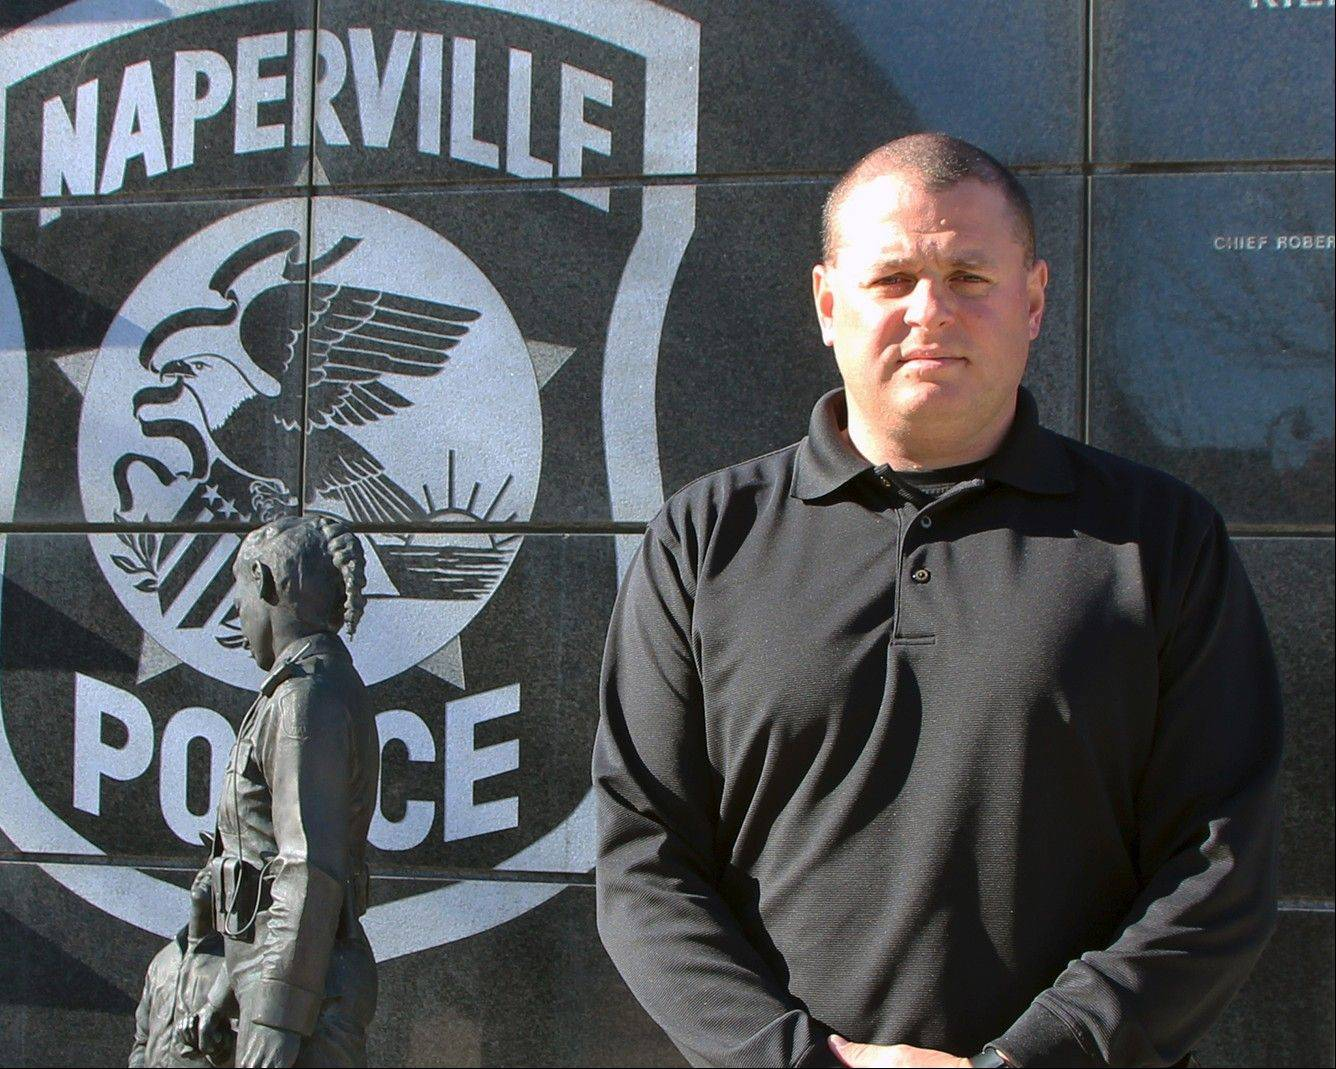 Derek Zook was promoted Monday to the rank of sergeant in the Naperville Police Department.